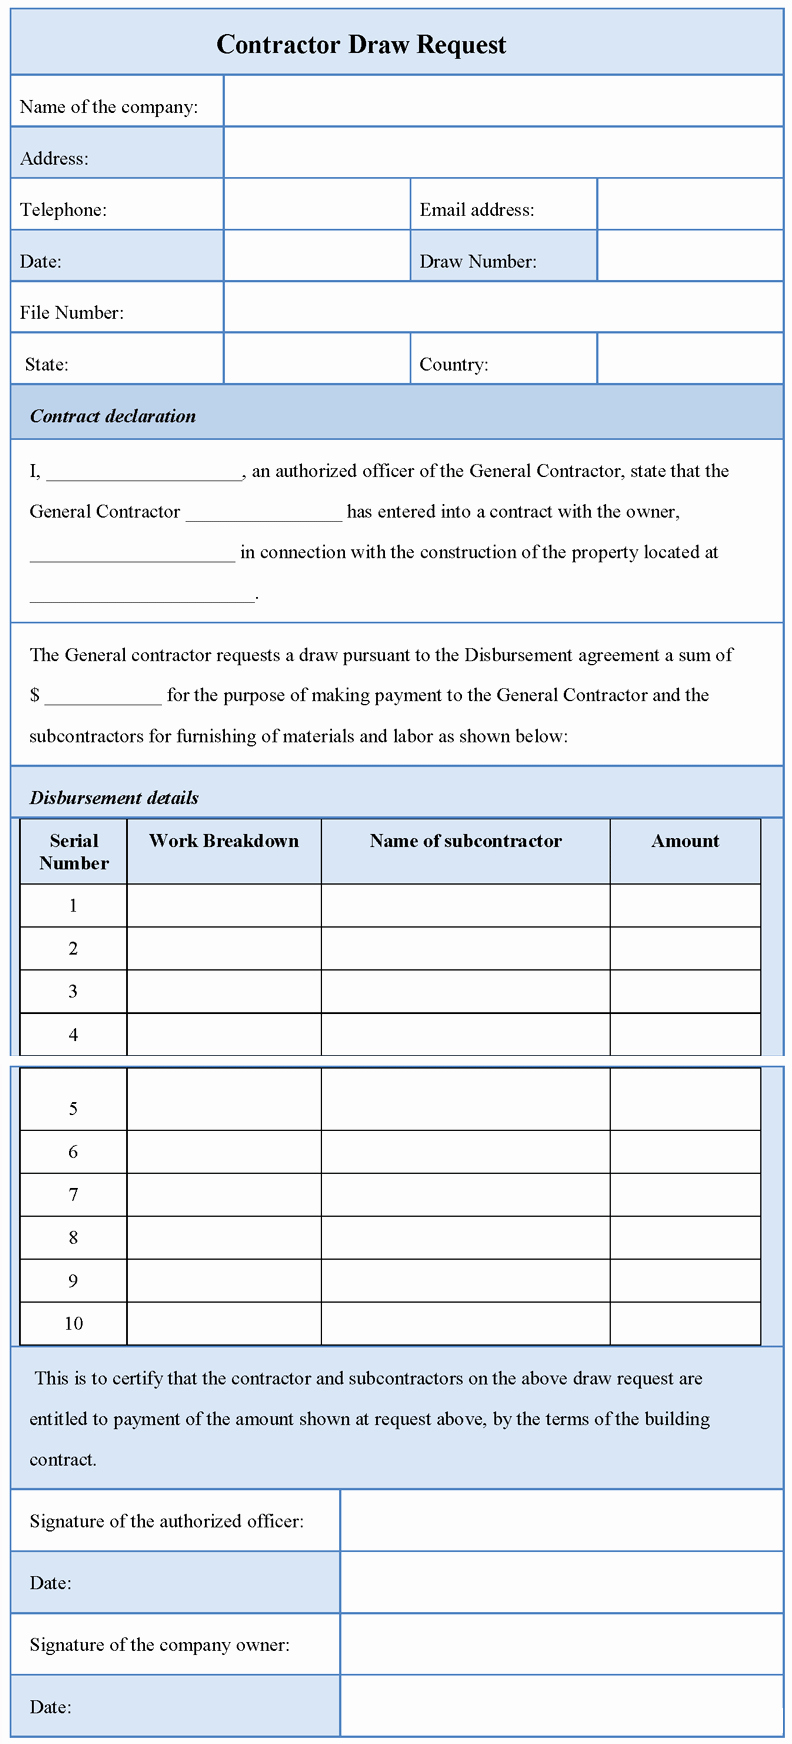 Construction Draw Schedule Template Luxury Printable Contractor Draw Request form